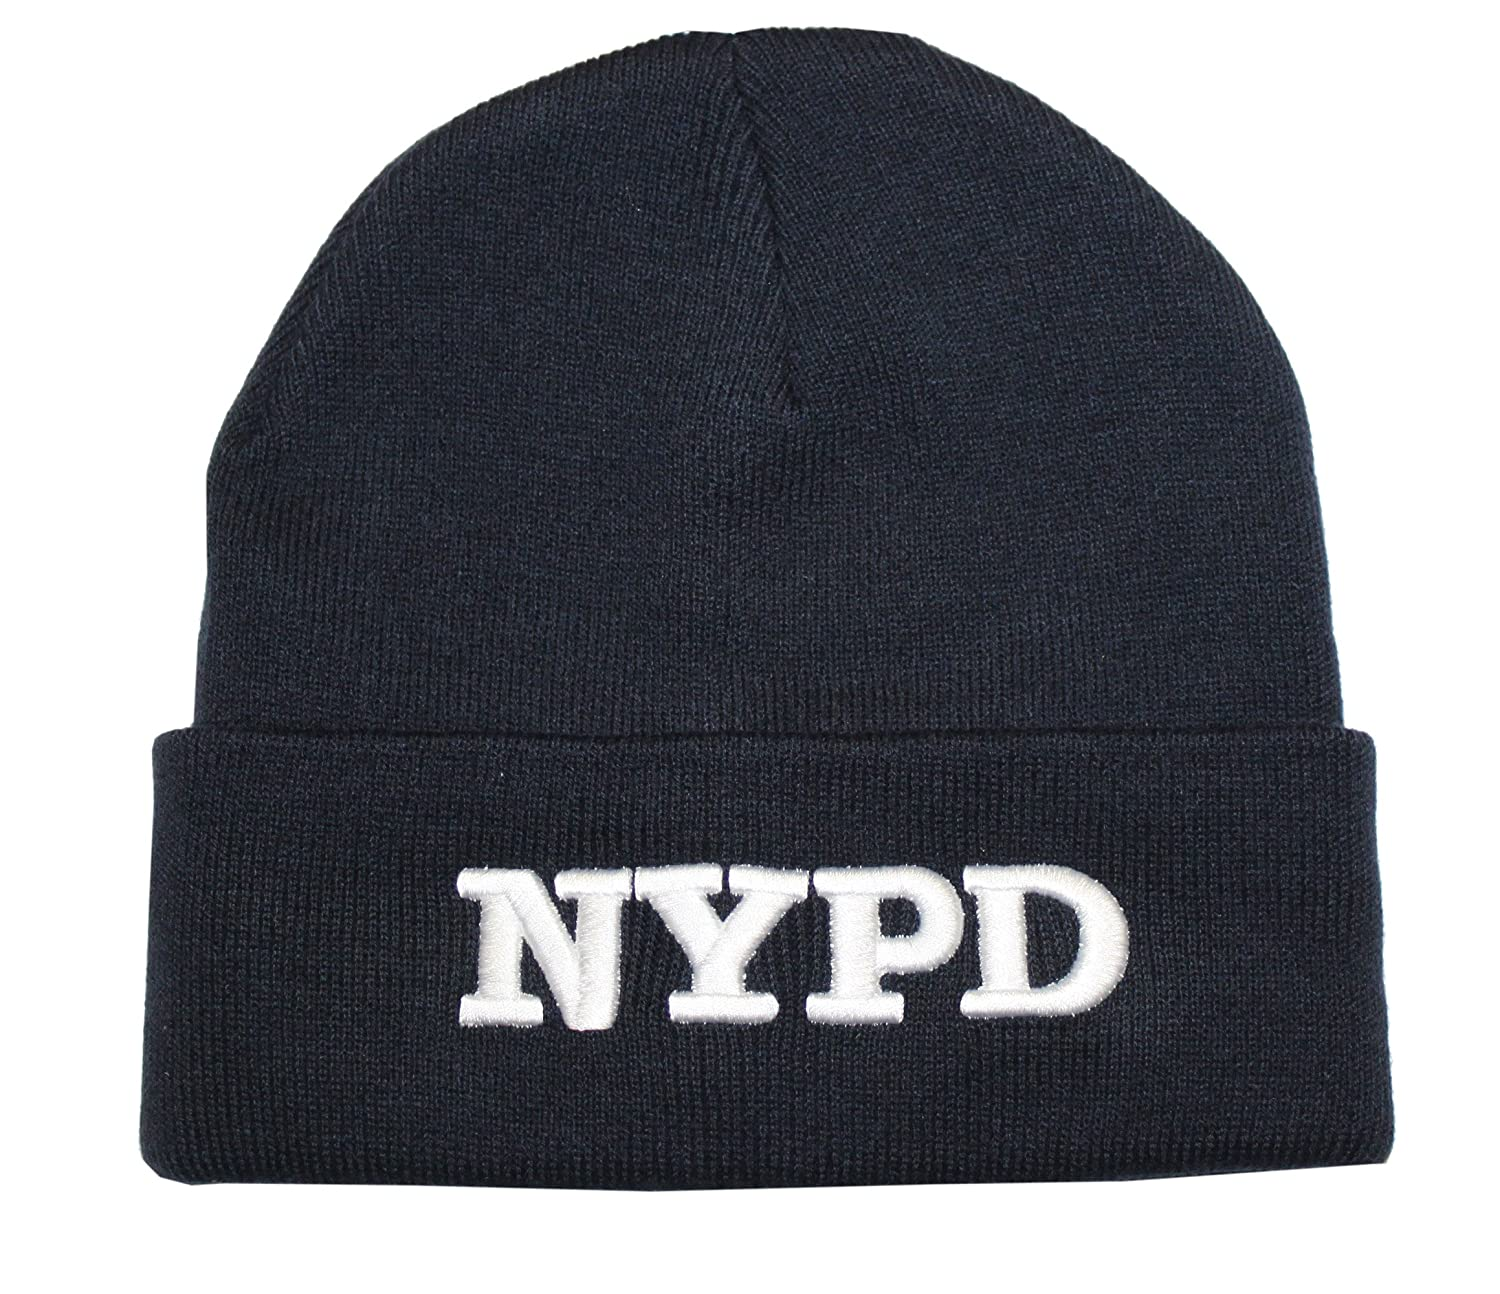 06d370caf48 Winter Hat New York Police Department Navy   White One Size